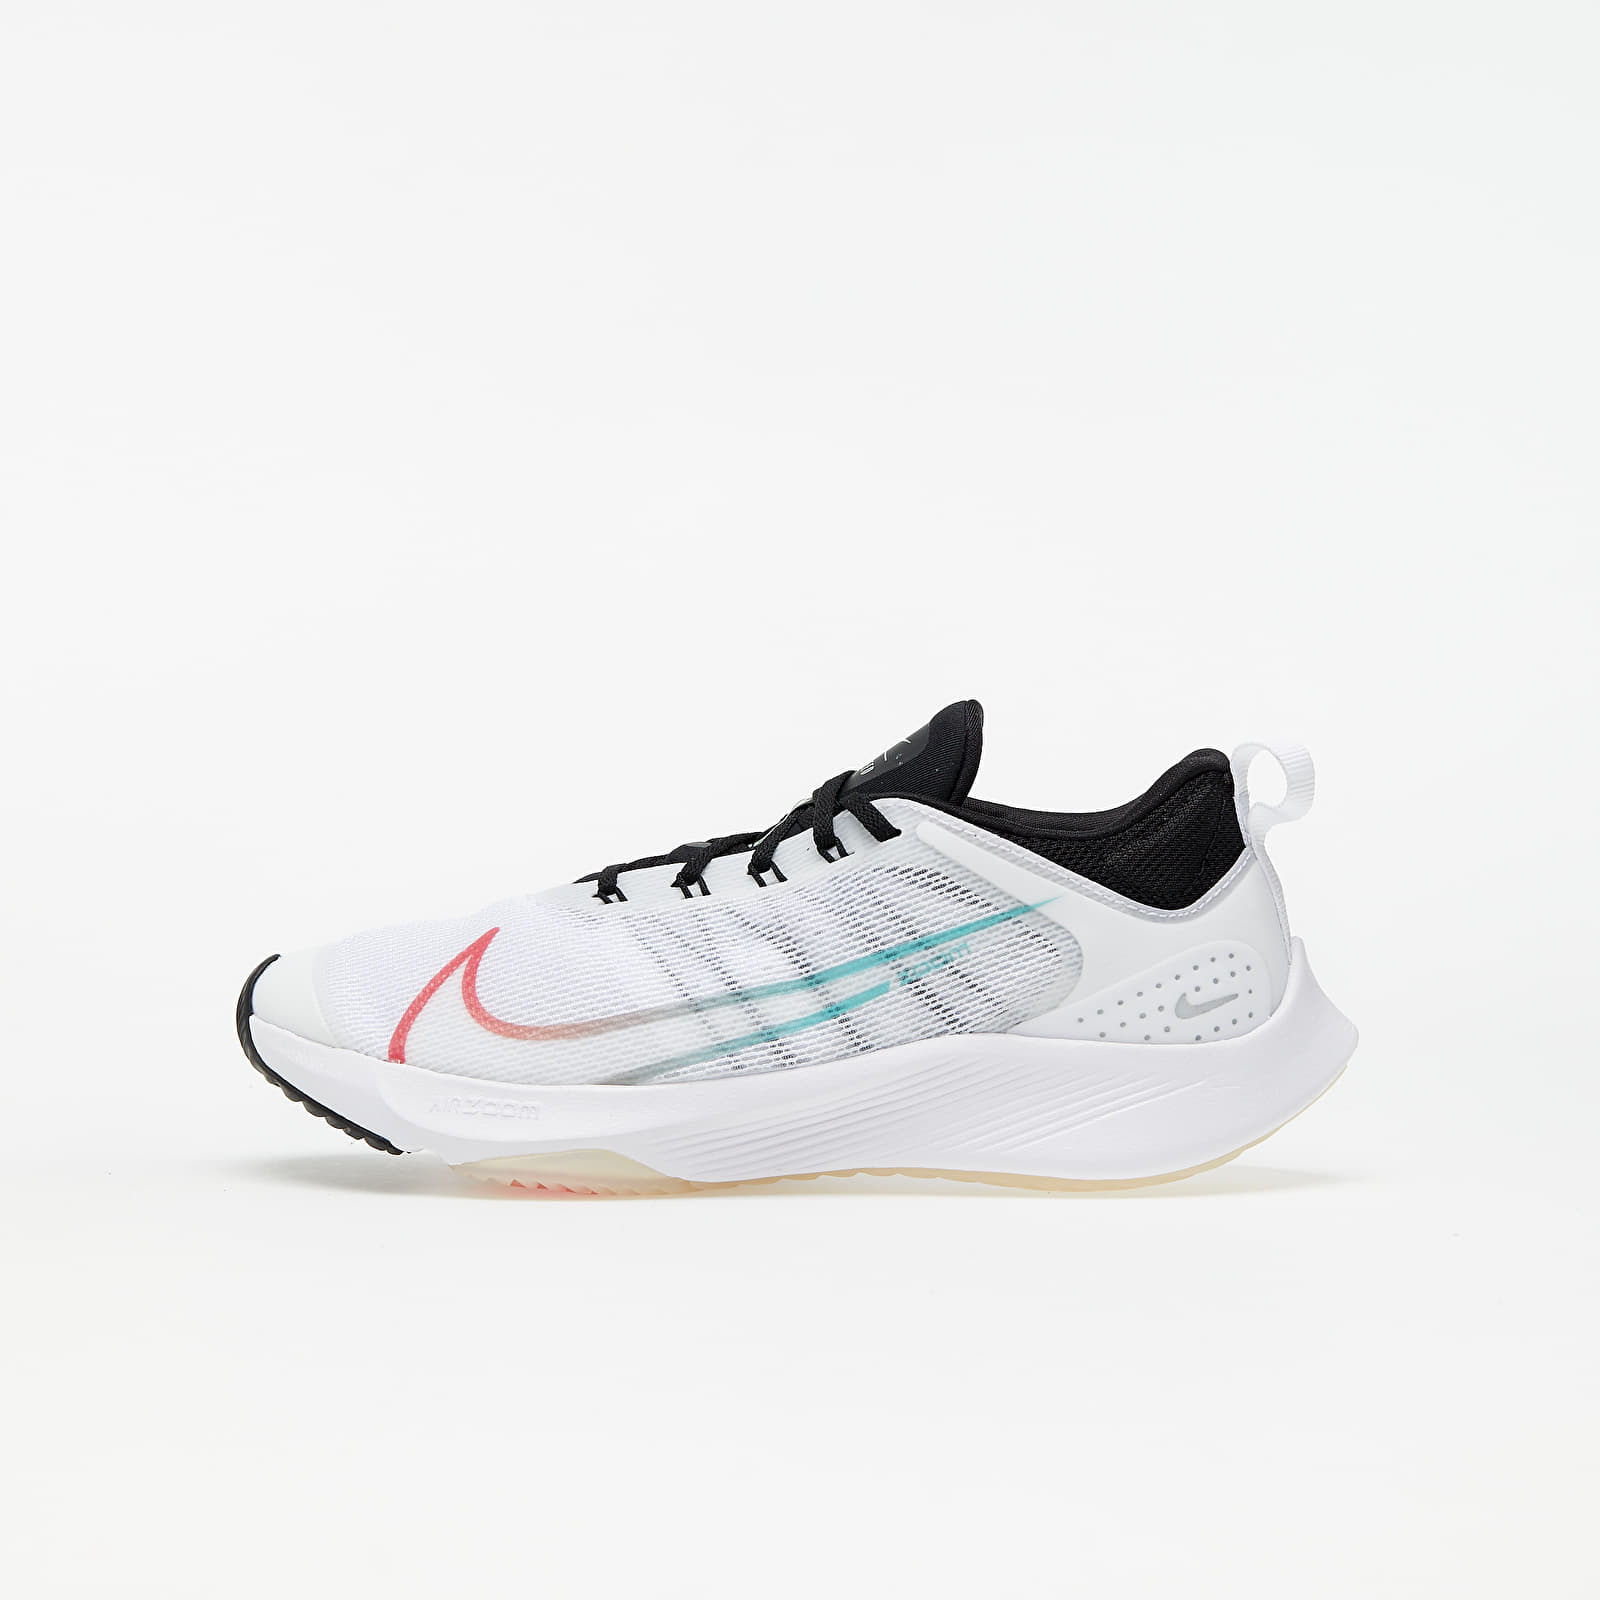 Nike Air Zoom Speed GS White/ Flash Crimson-Hyper Jade-Black EUR 40